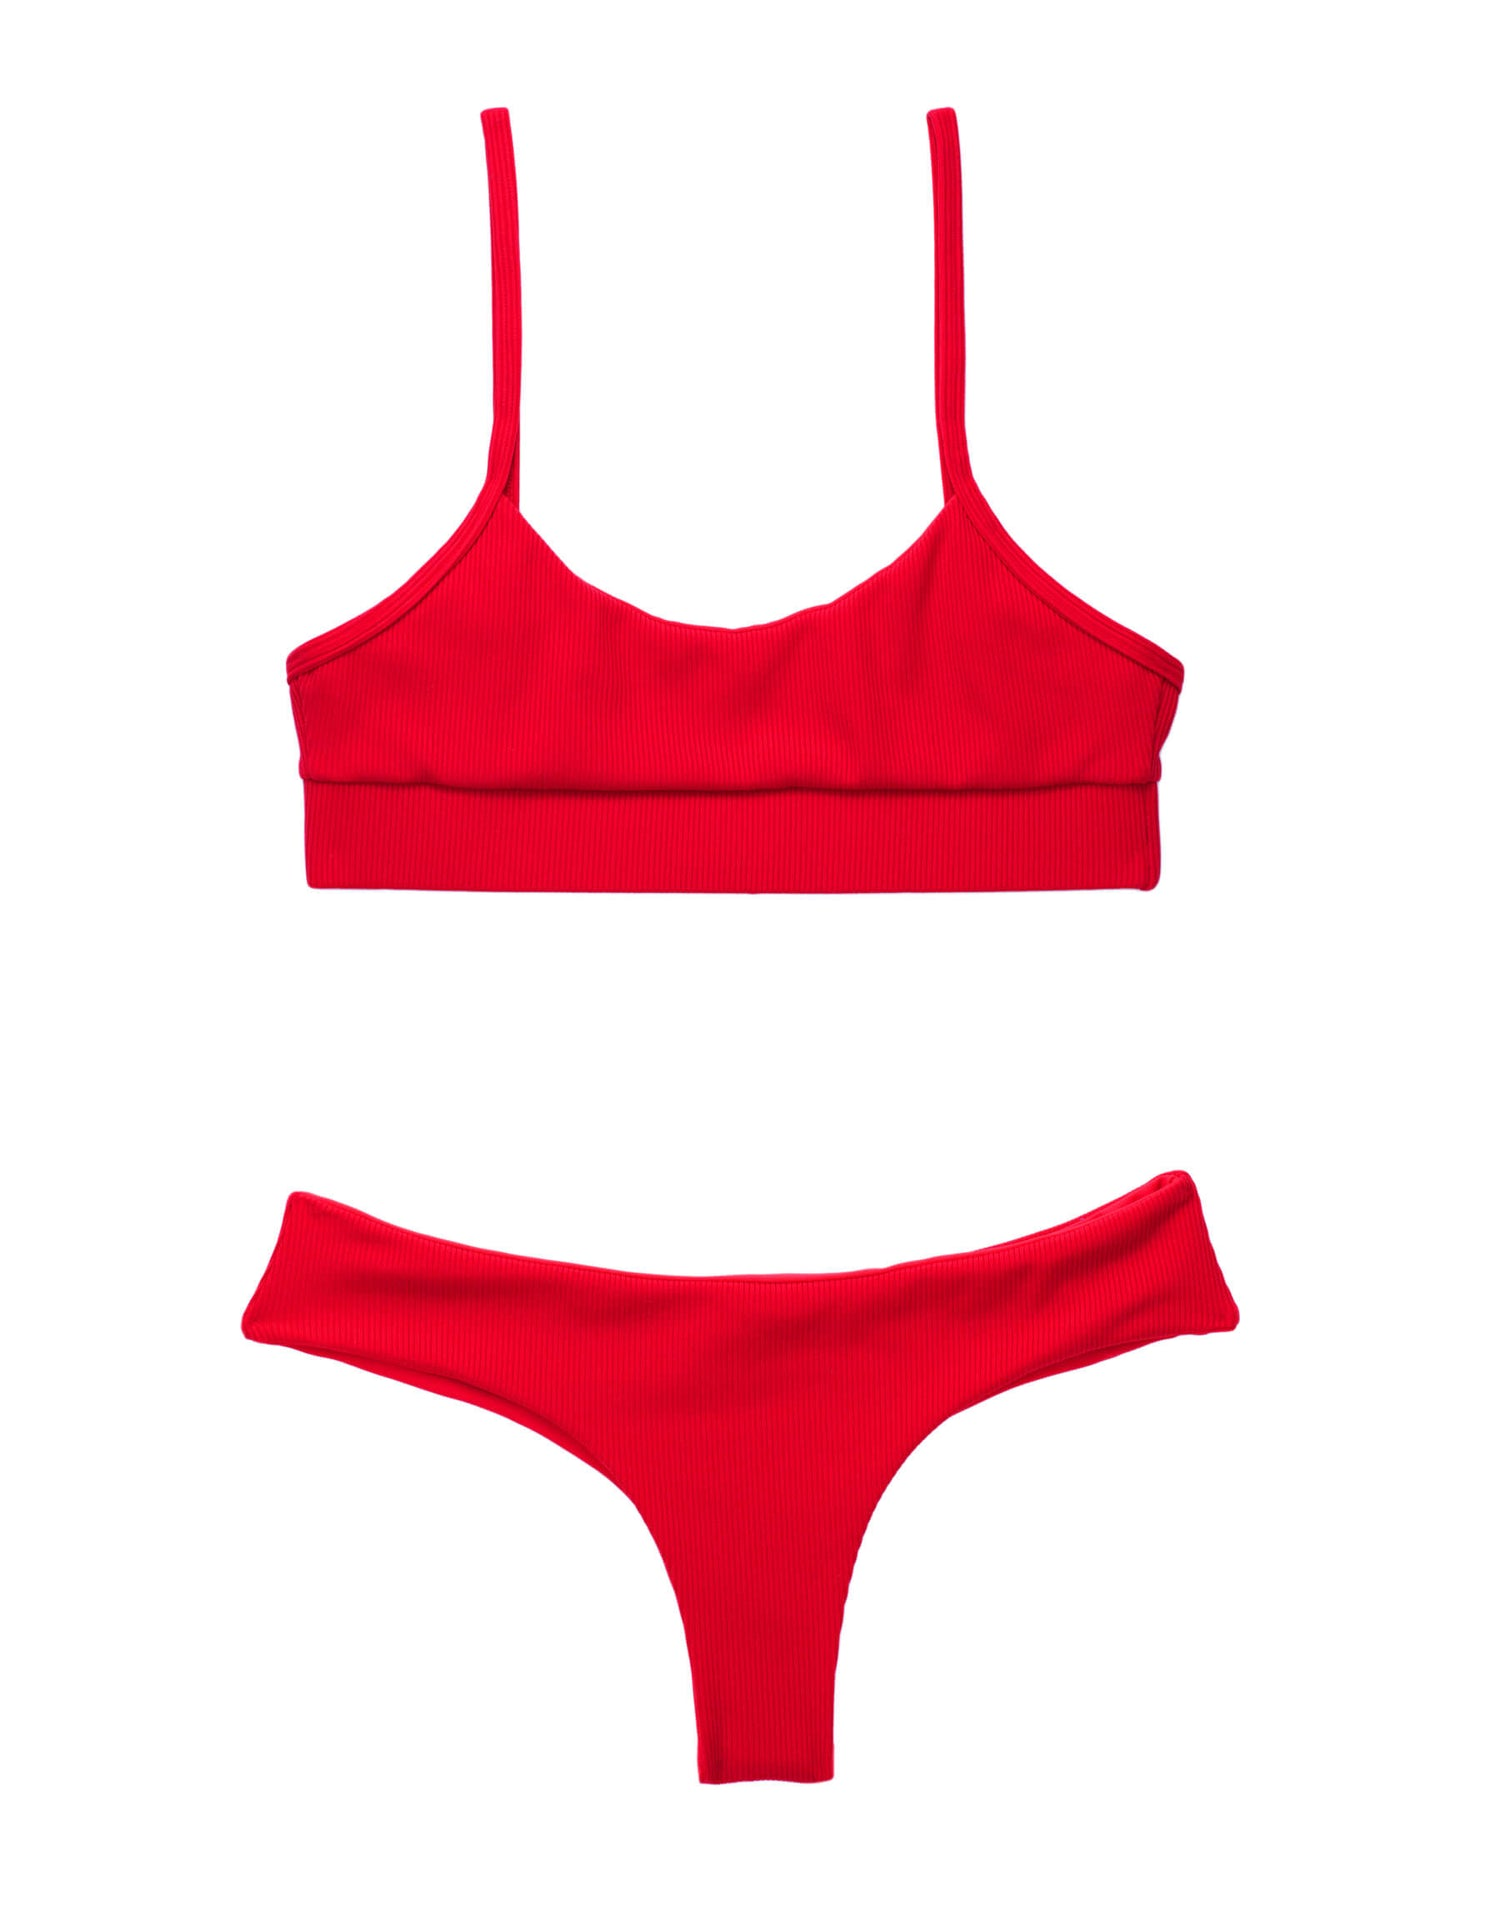 Rib Tide Bralette Bikini Top in Red Rib - product view